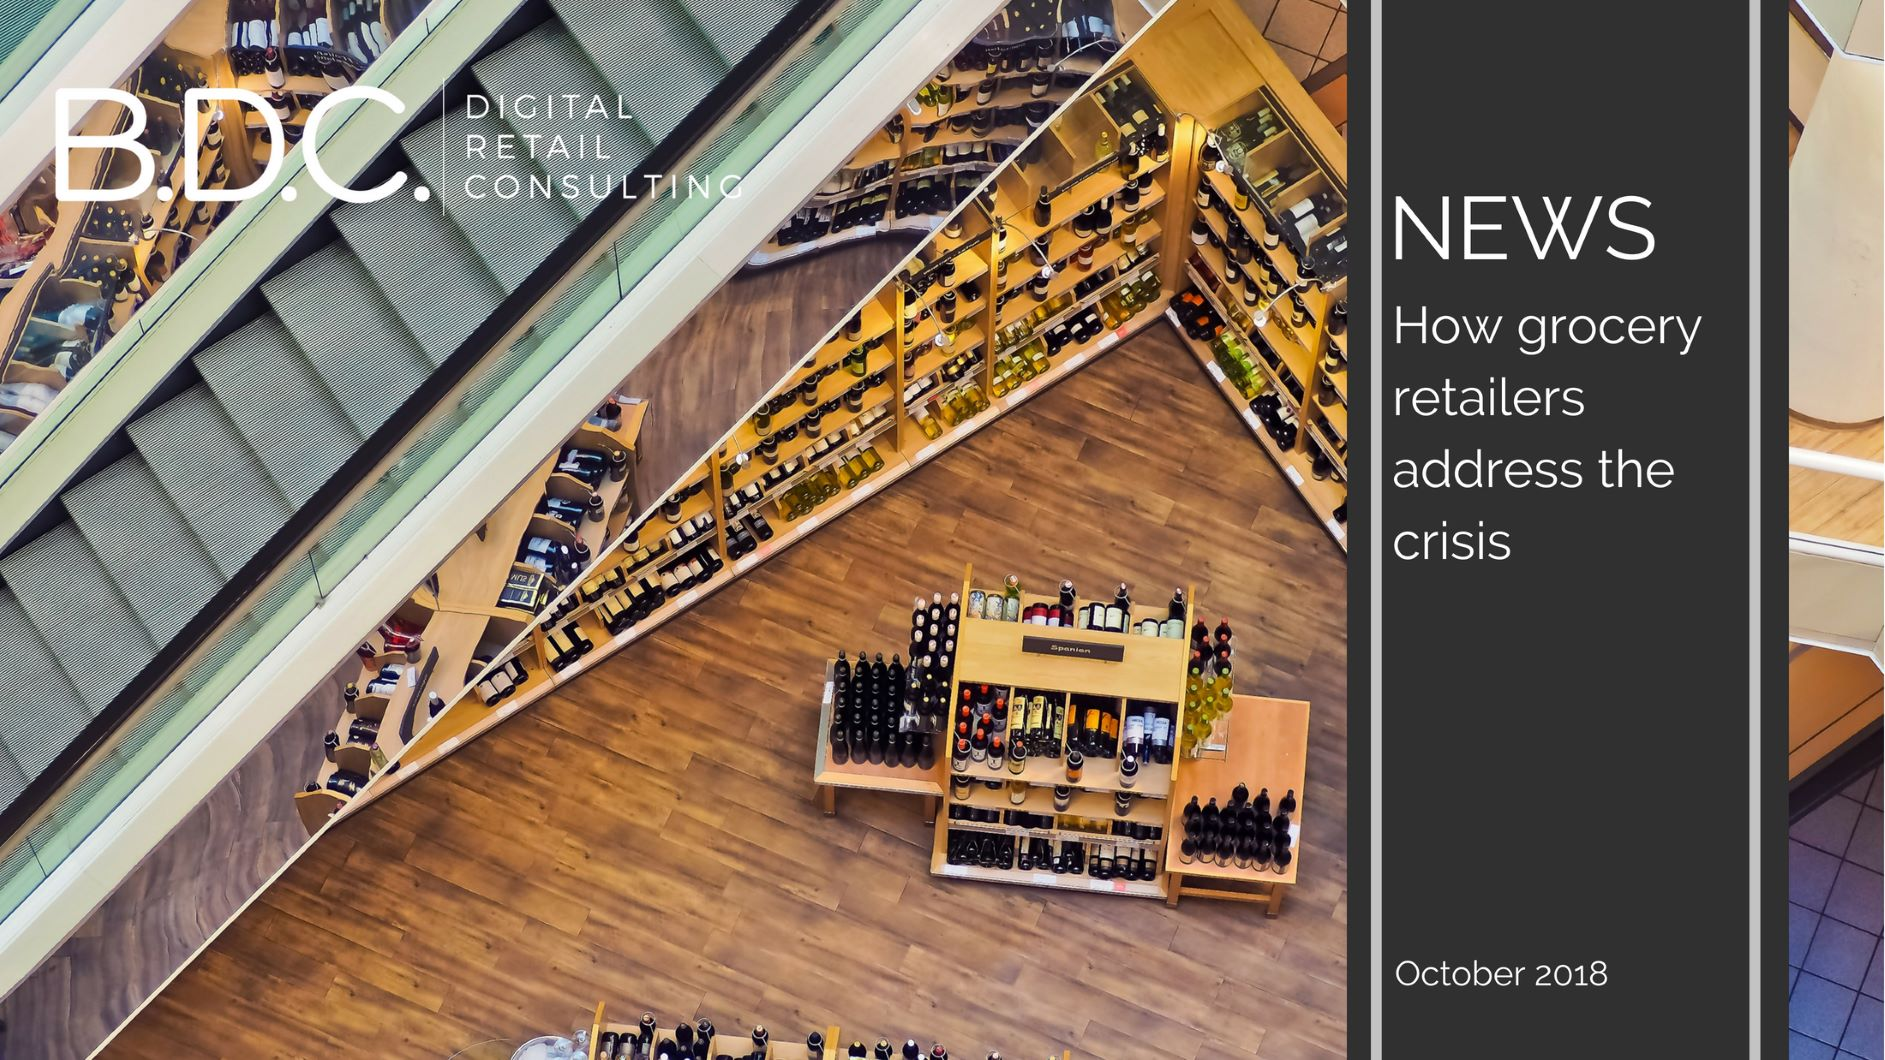 Trends News 11 - How physical grocery retailers address the high street crisis